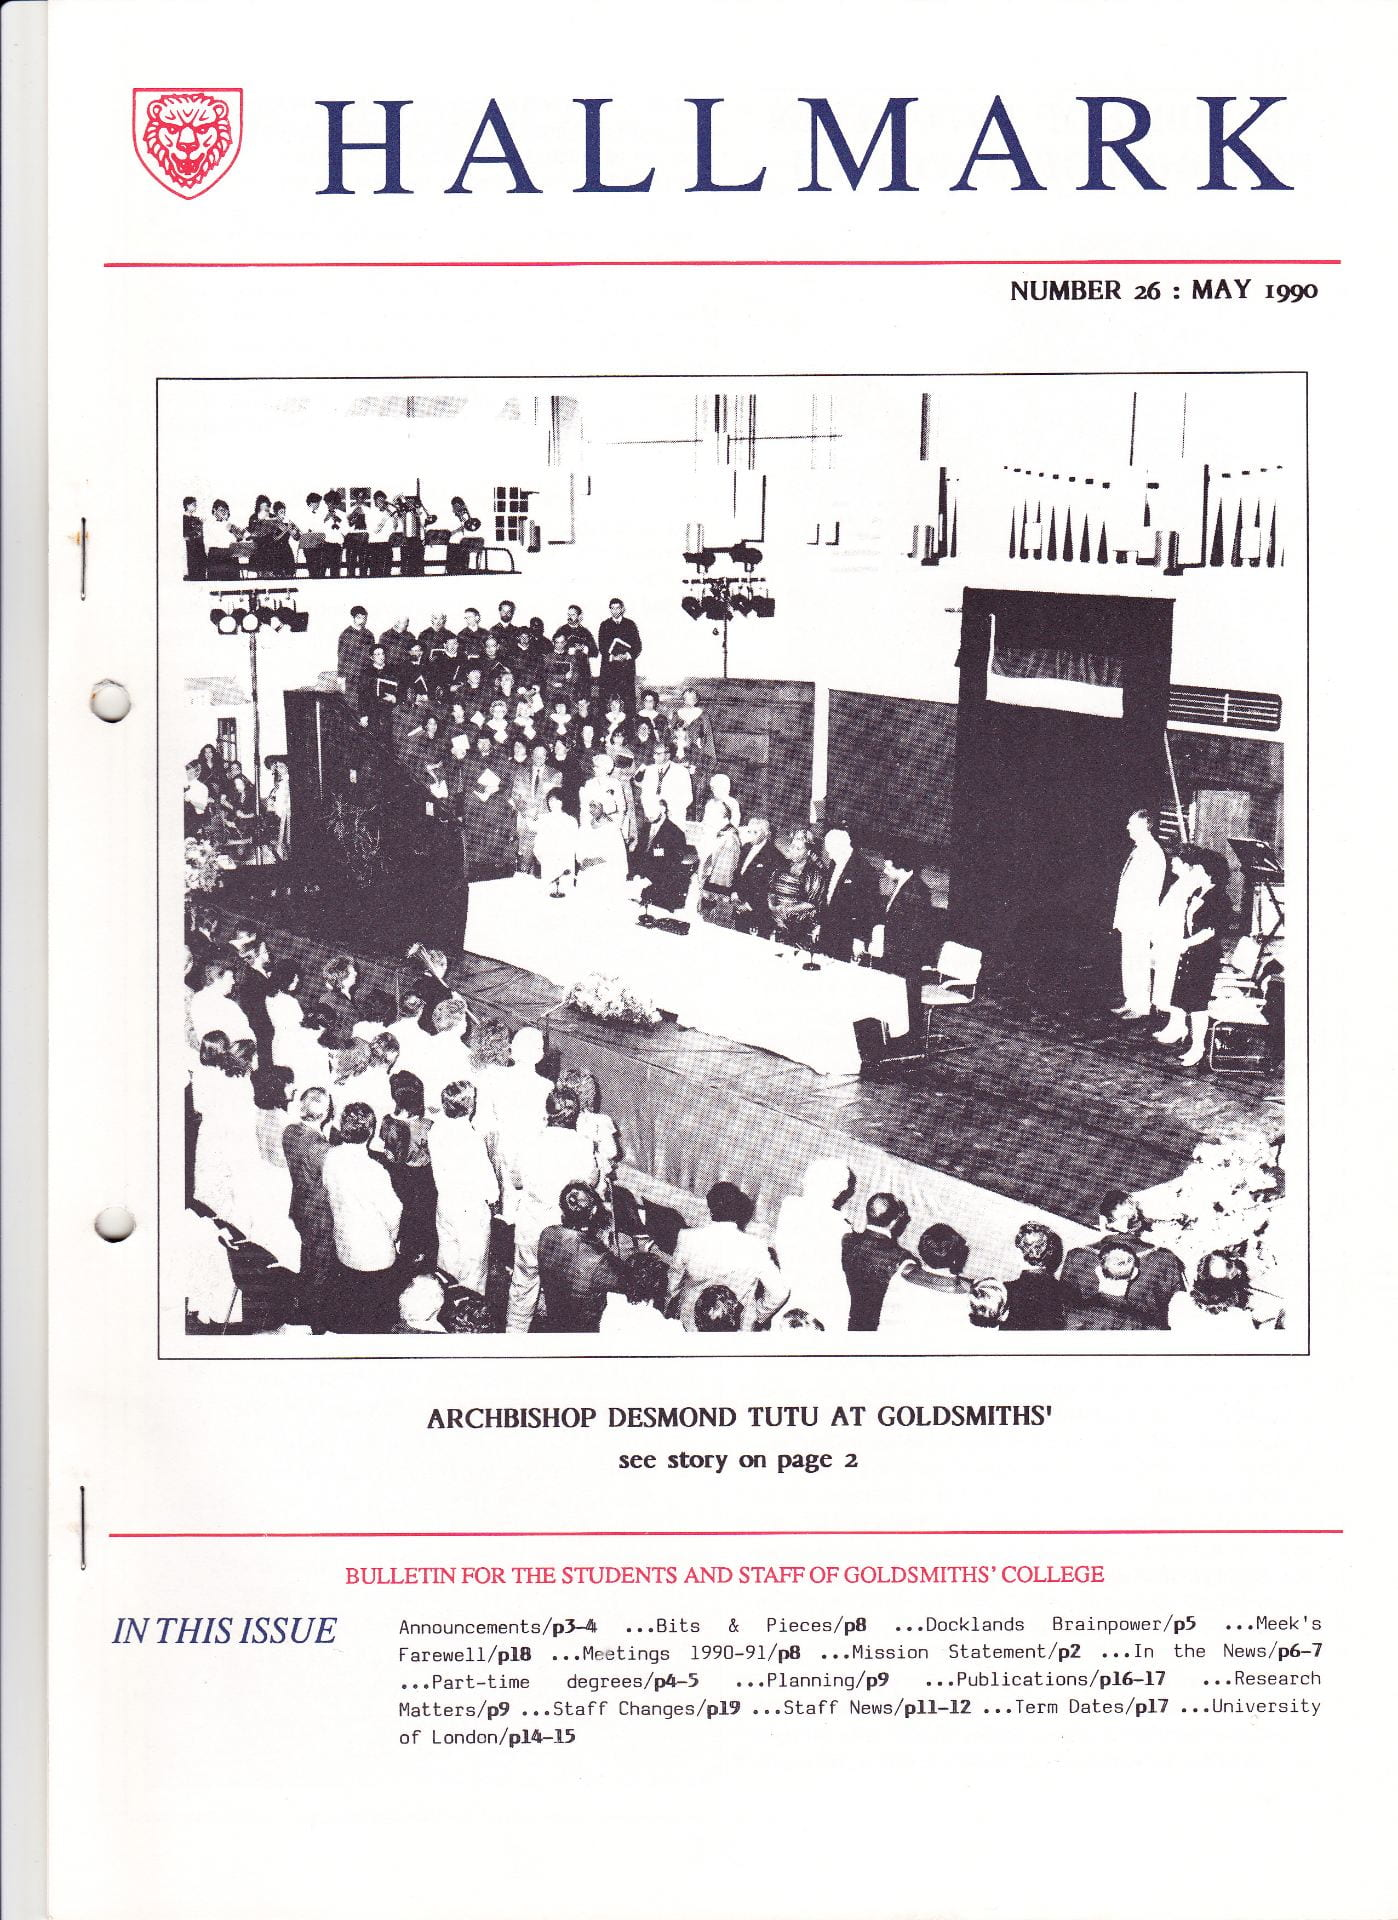 The cover of Goldsmiths' College internal staff and students monthly magazine for May 1990 featuring a scanned image of Archbishop Desmond Tutu receiving the Honorary Freedom of Lewisham in the Great Hall of Goldsmiths' College.